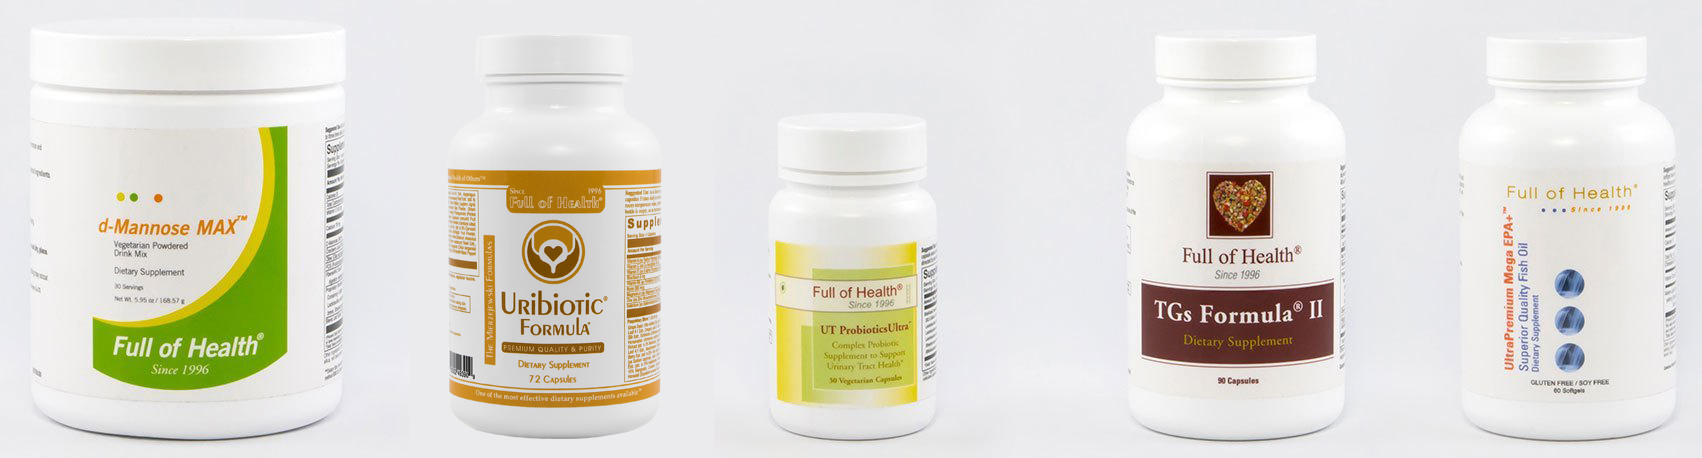 Helping to keep your urinary tract healthy the better, natural way is our priority.